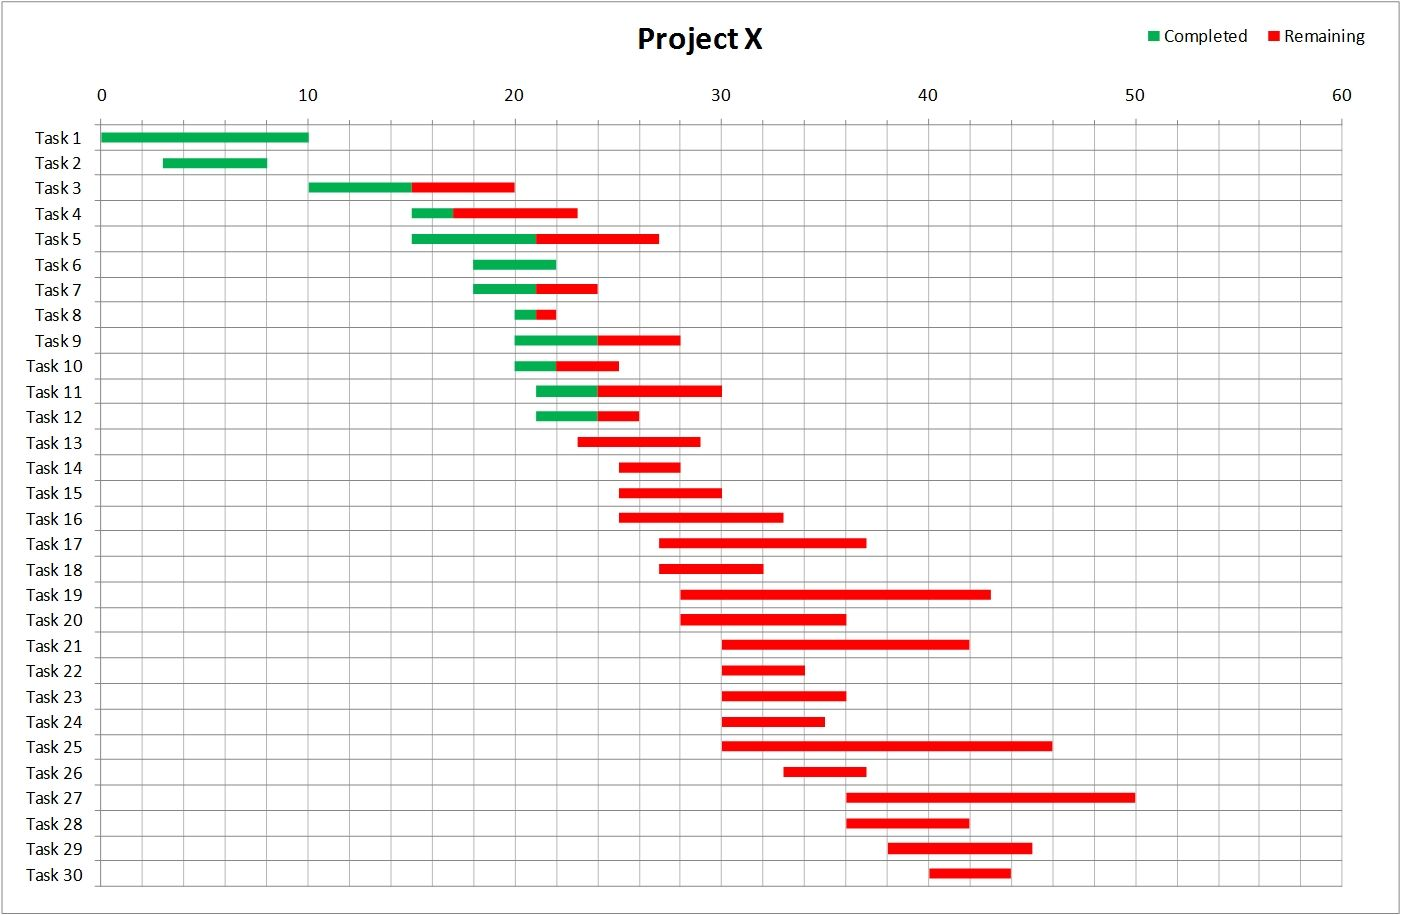 Gantt chart gantt diagram gantt chart excel template gantt chart the excel gantt chart template allows you to quickly build a gantt chart in excel with great features the chart can be updated as the project proceeds geenschuldenfo Choice Image